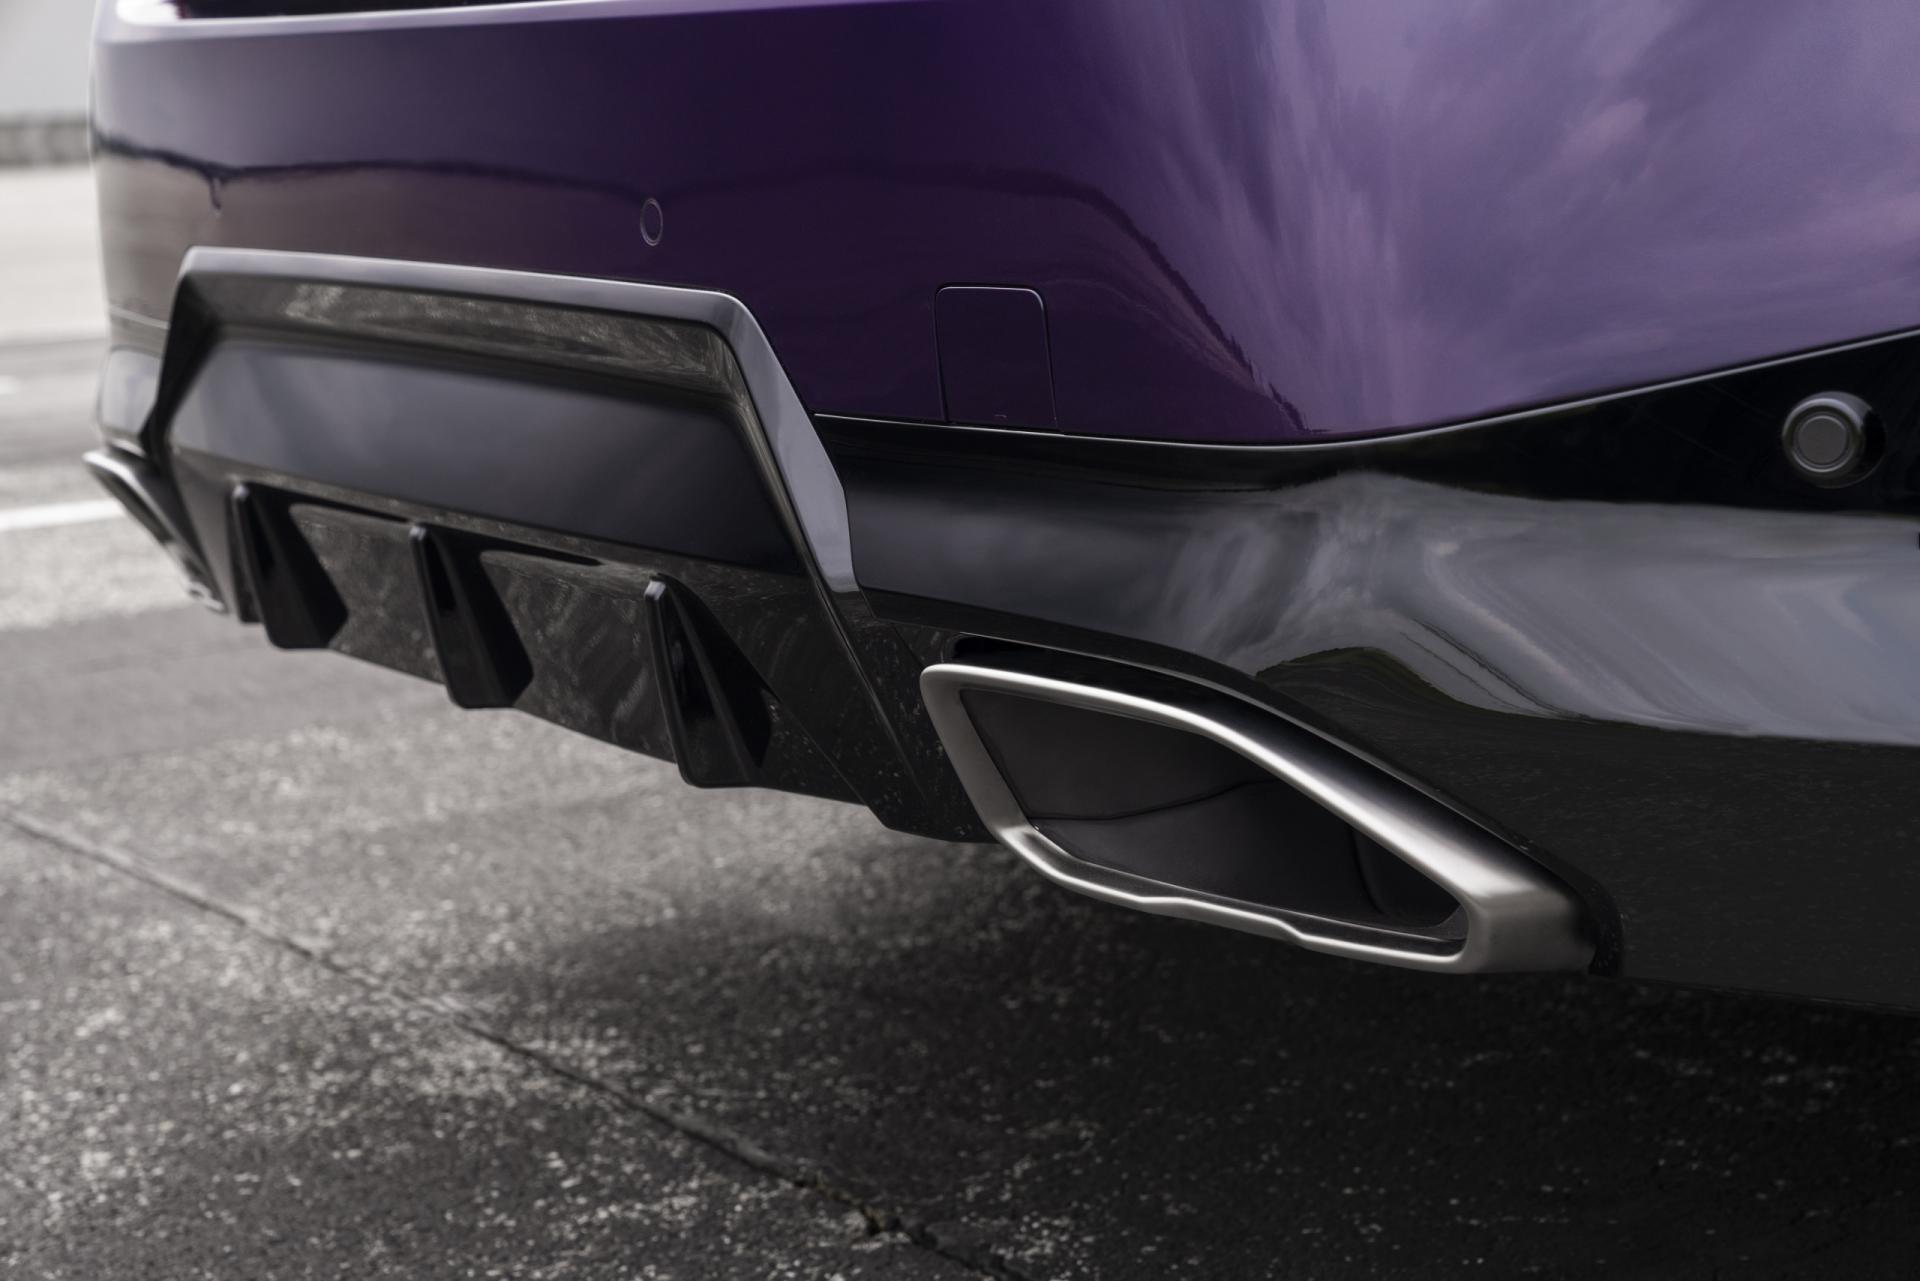 New BMW 2 Series Coupe diffuser